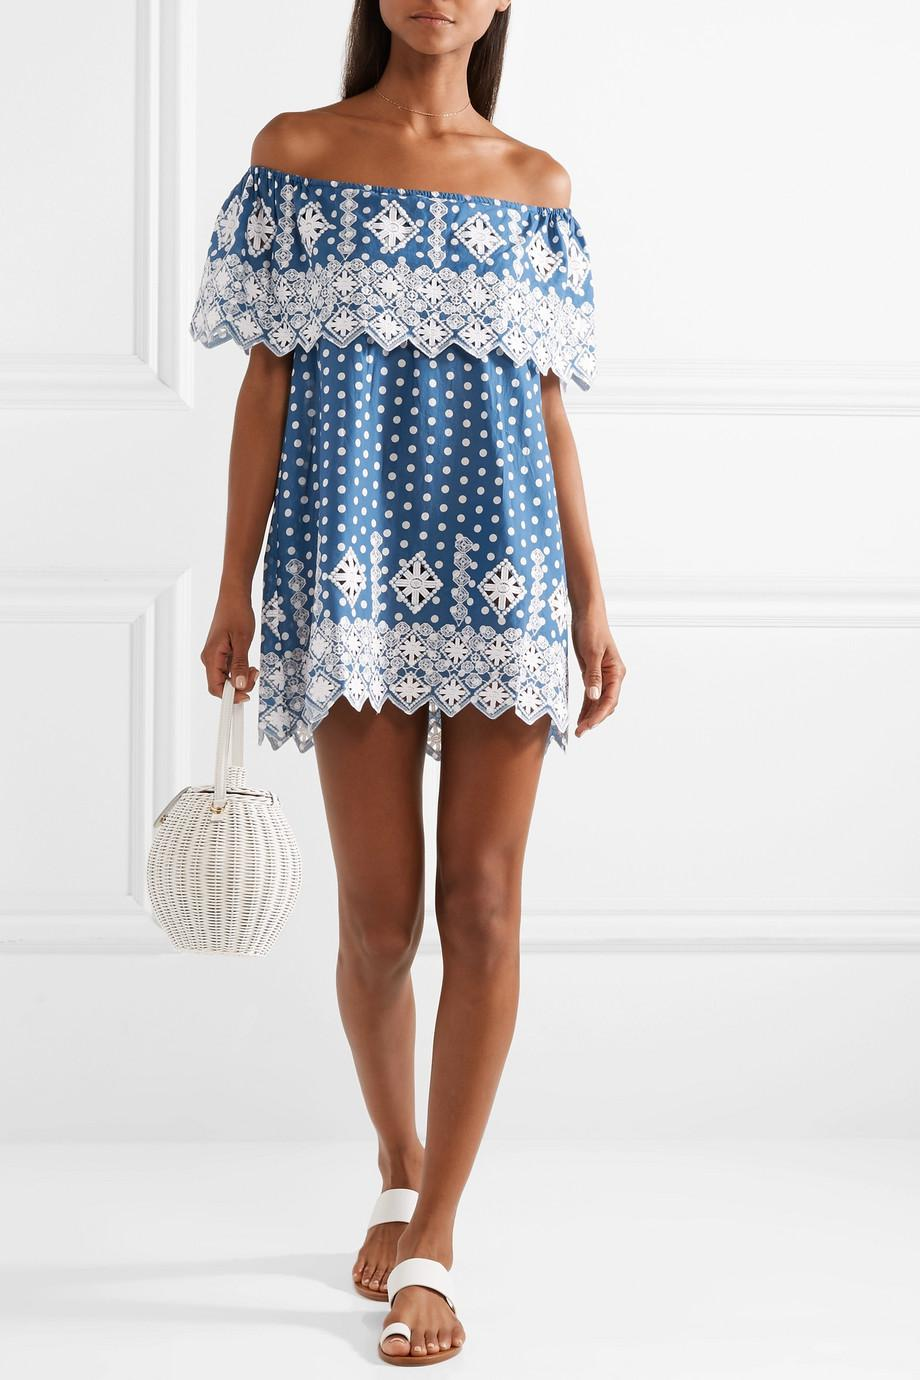 Agnes Off-the-shoulder Crocheted Polka-dot Cotton-voile Mini Dress - Cobalt blue Miguelina Ebay Cheap Price ol74rGy9A